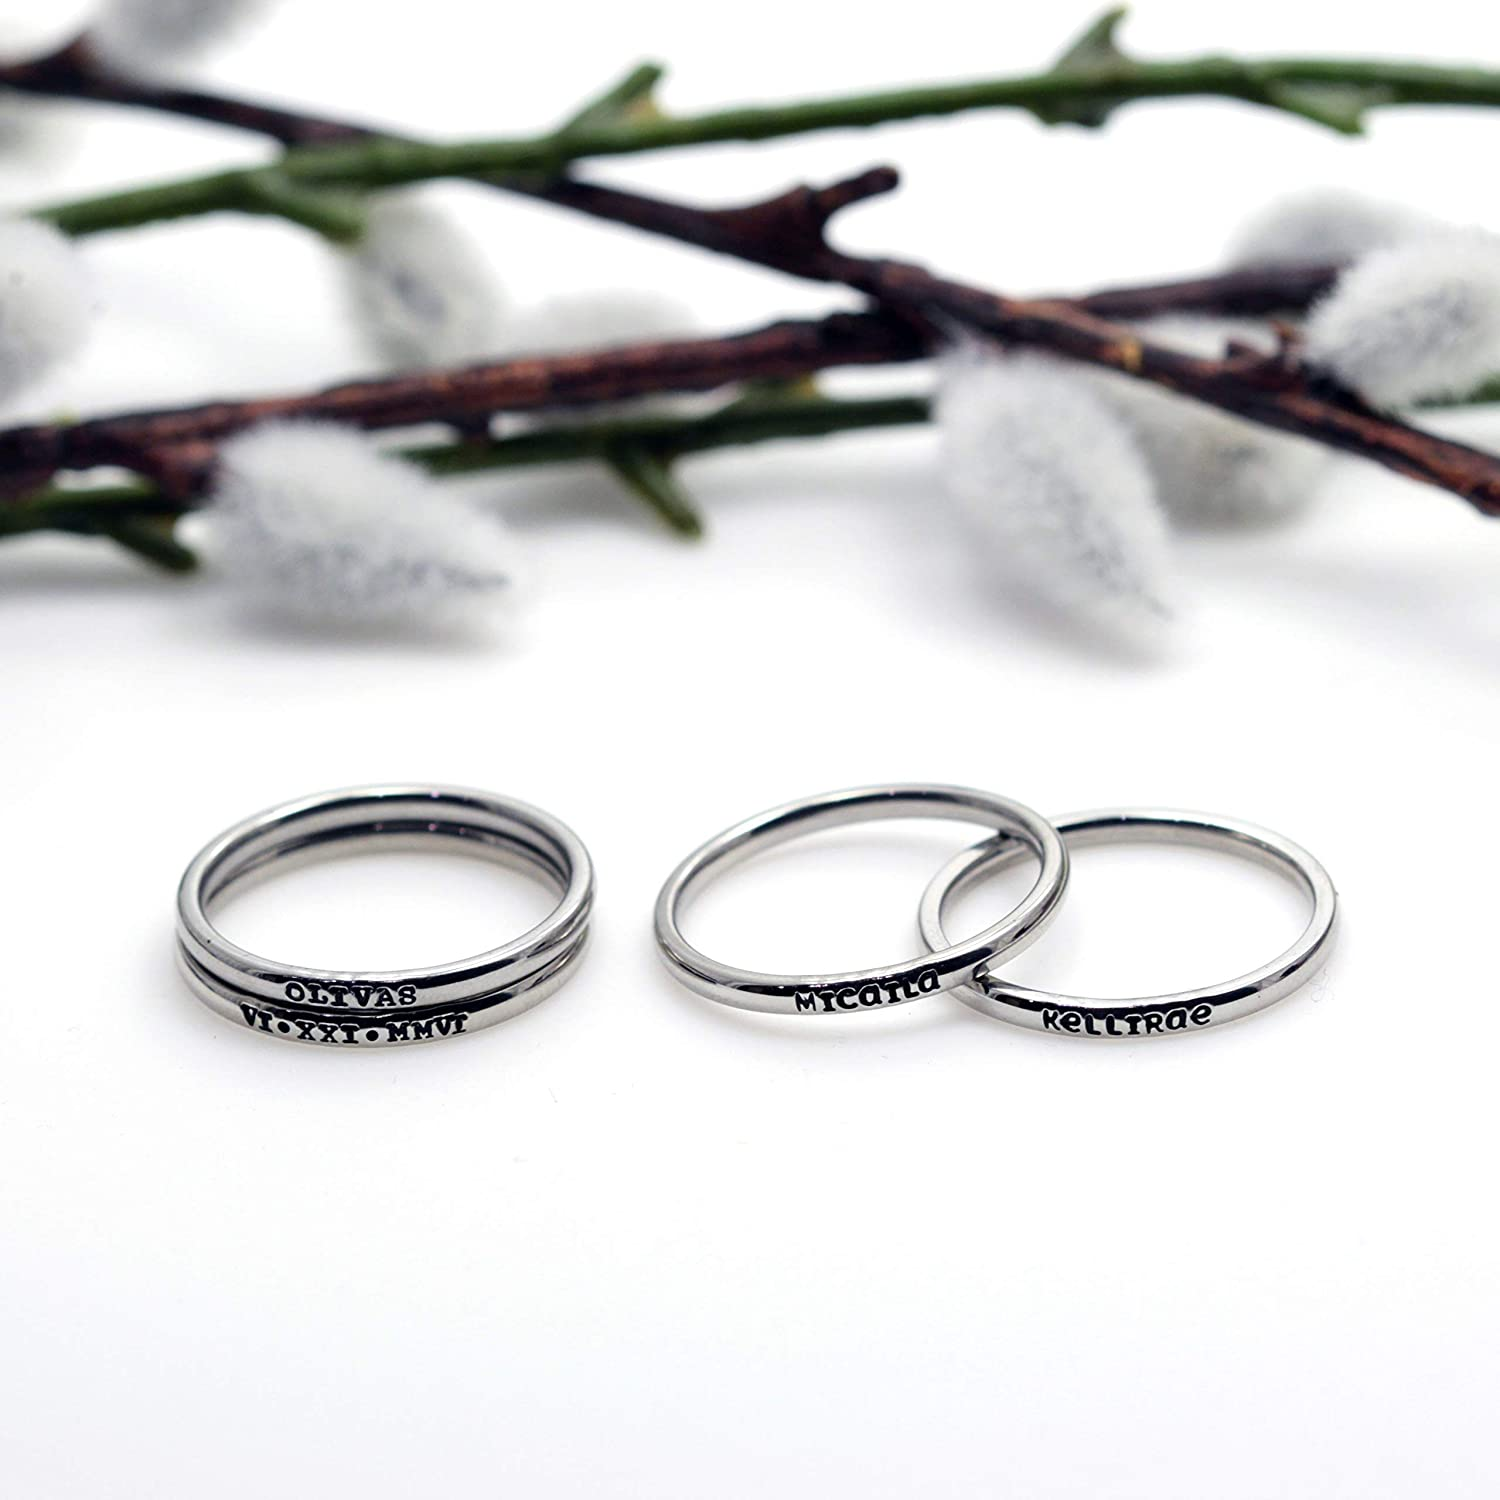 Mama Bear SET of 2 Rings 3mm *Shiny Finish* Stackable Stainless Steel Custom Hand Stamped Ring